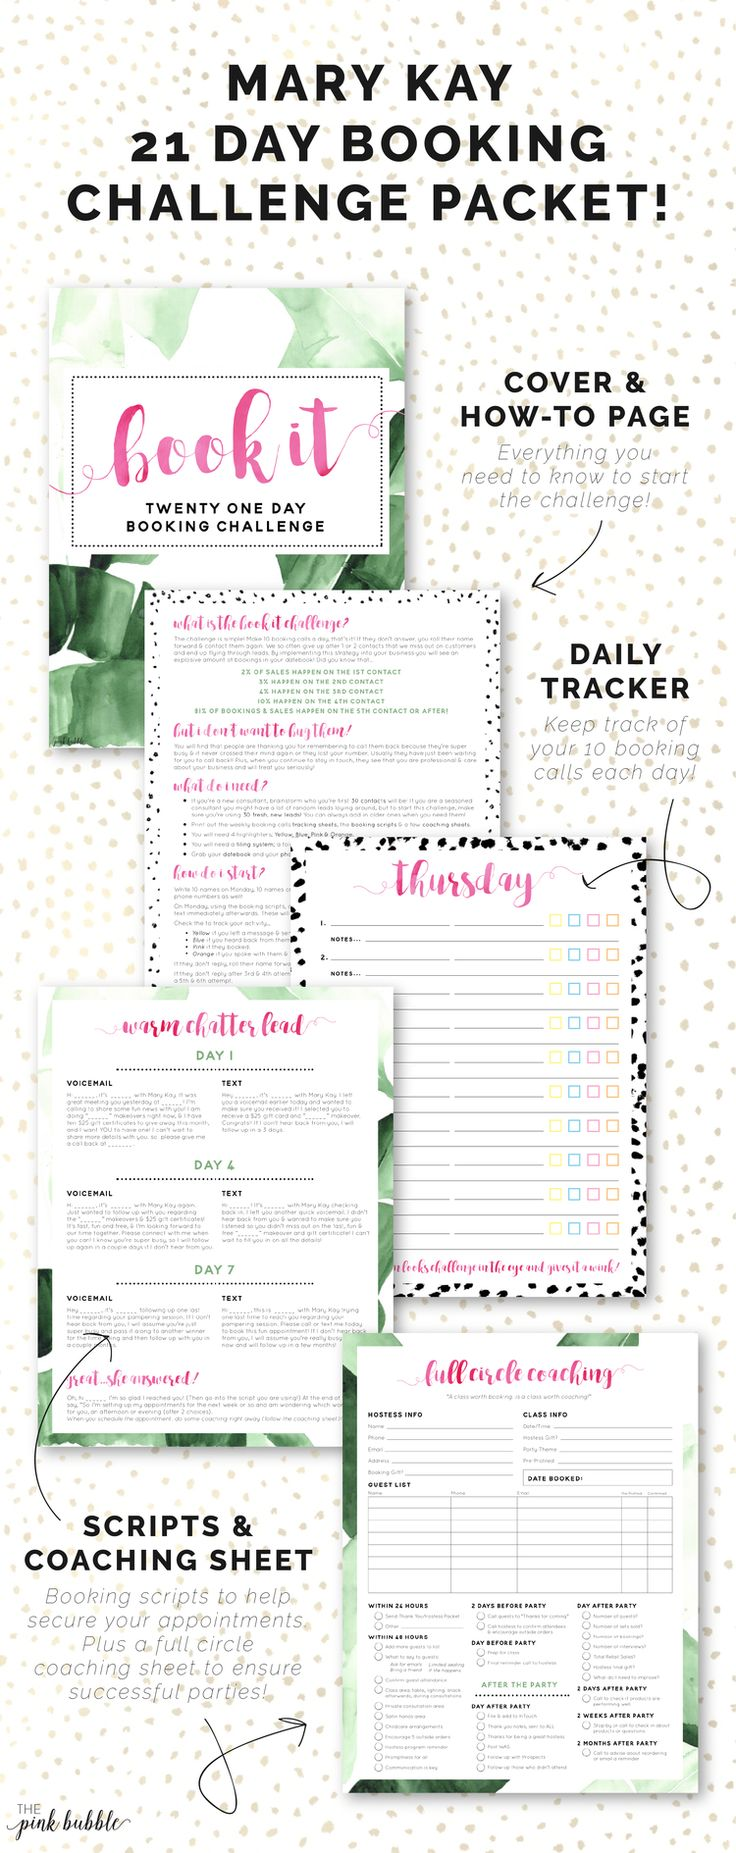 Mary Kay 21 Day Booking Challenge Packet! Find it only at www.thepinkbubble.co!